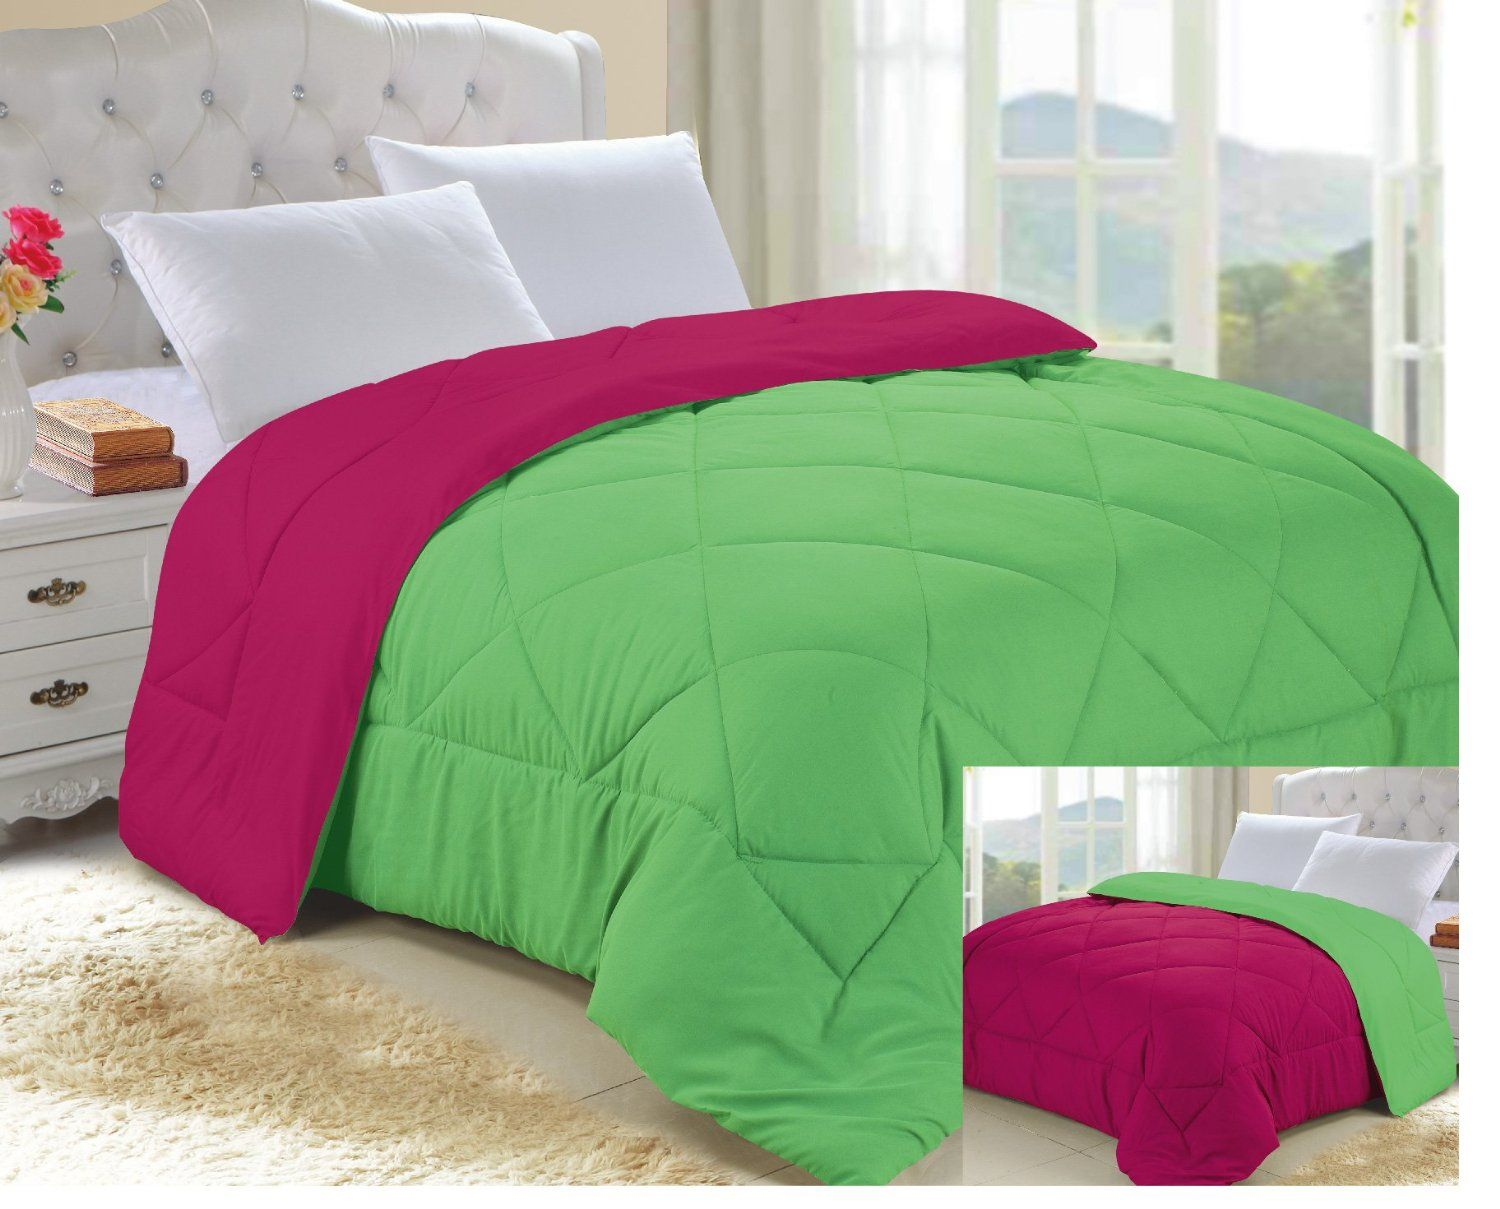 Lime Green Comforter Bedding | Green comforter, Comforter and ... : lime green quilts - Adamdwight.com